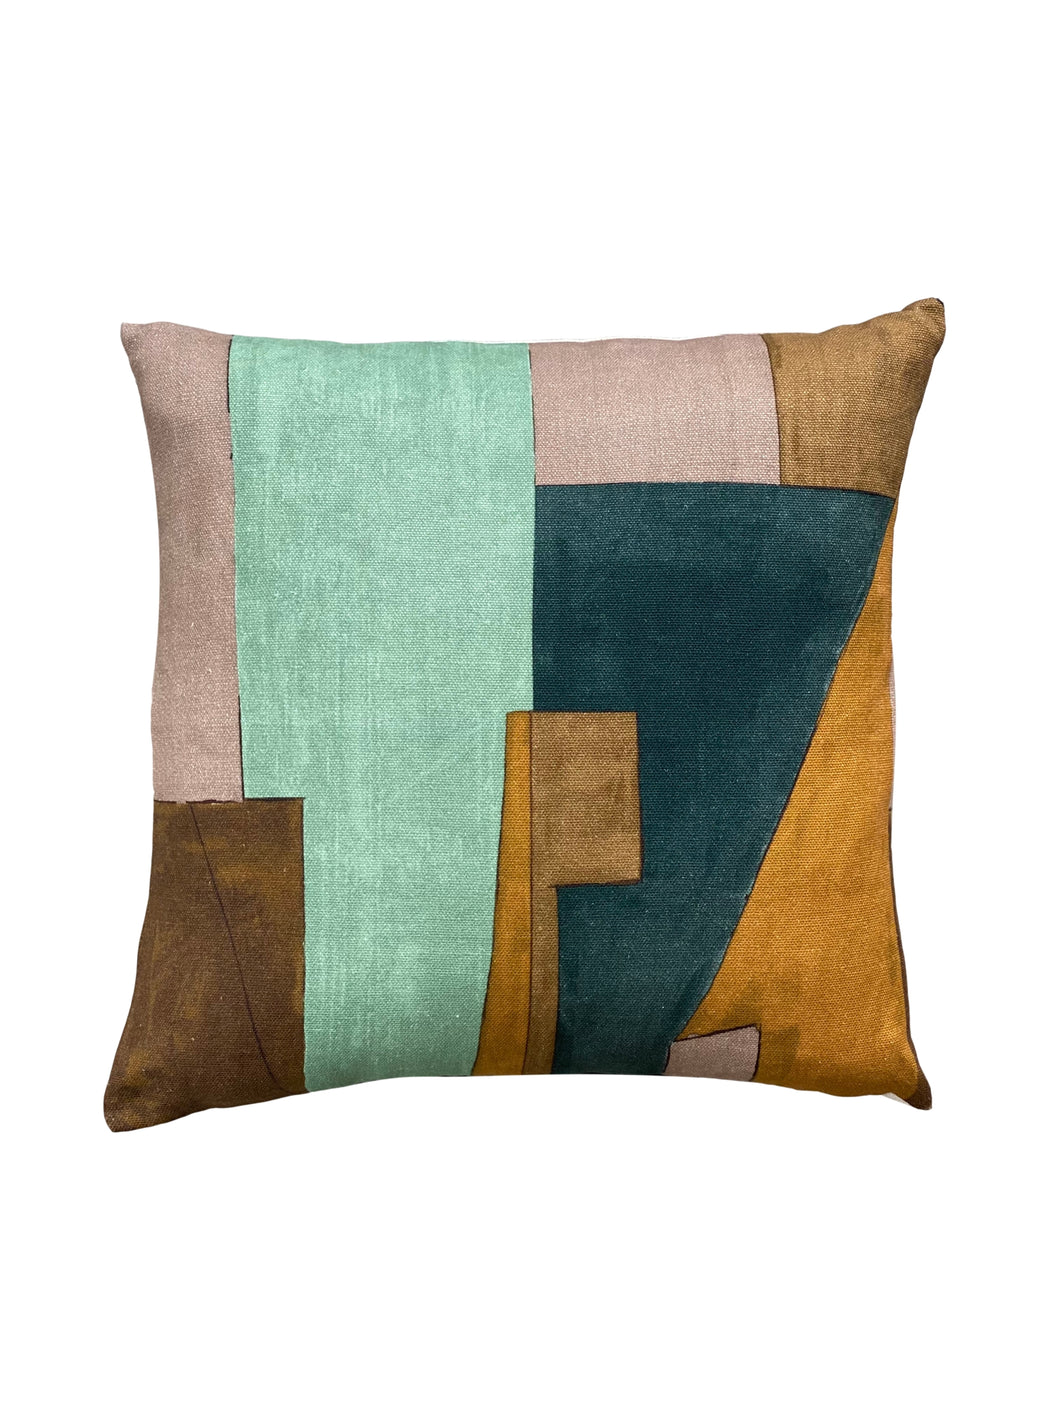 Kelly Wearstler District Tobacco Pillow